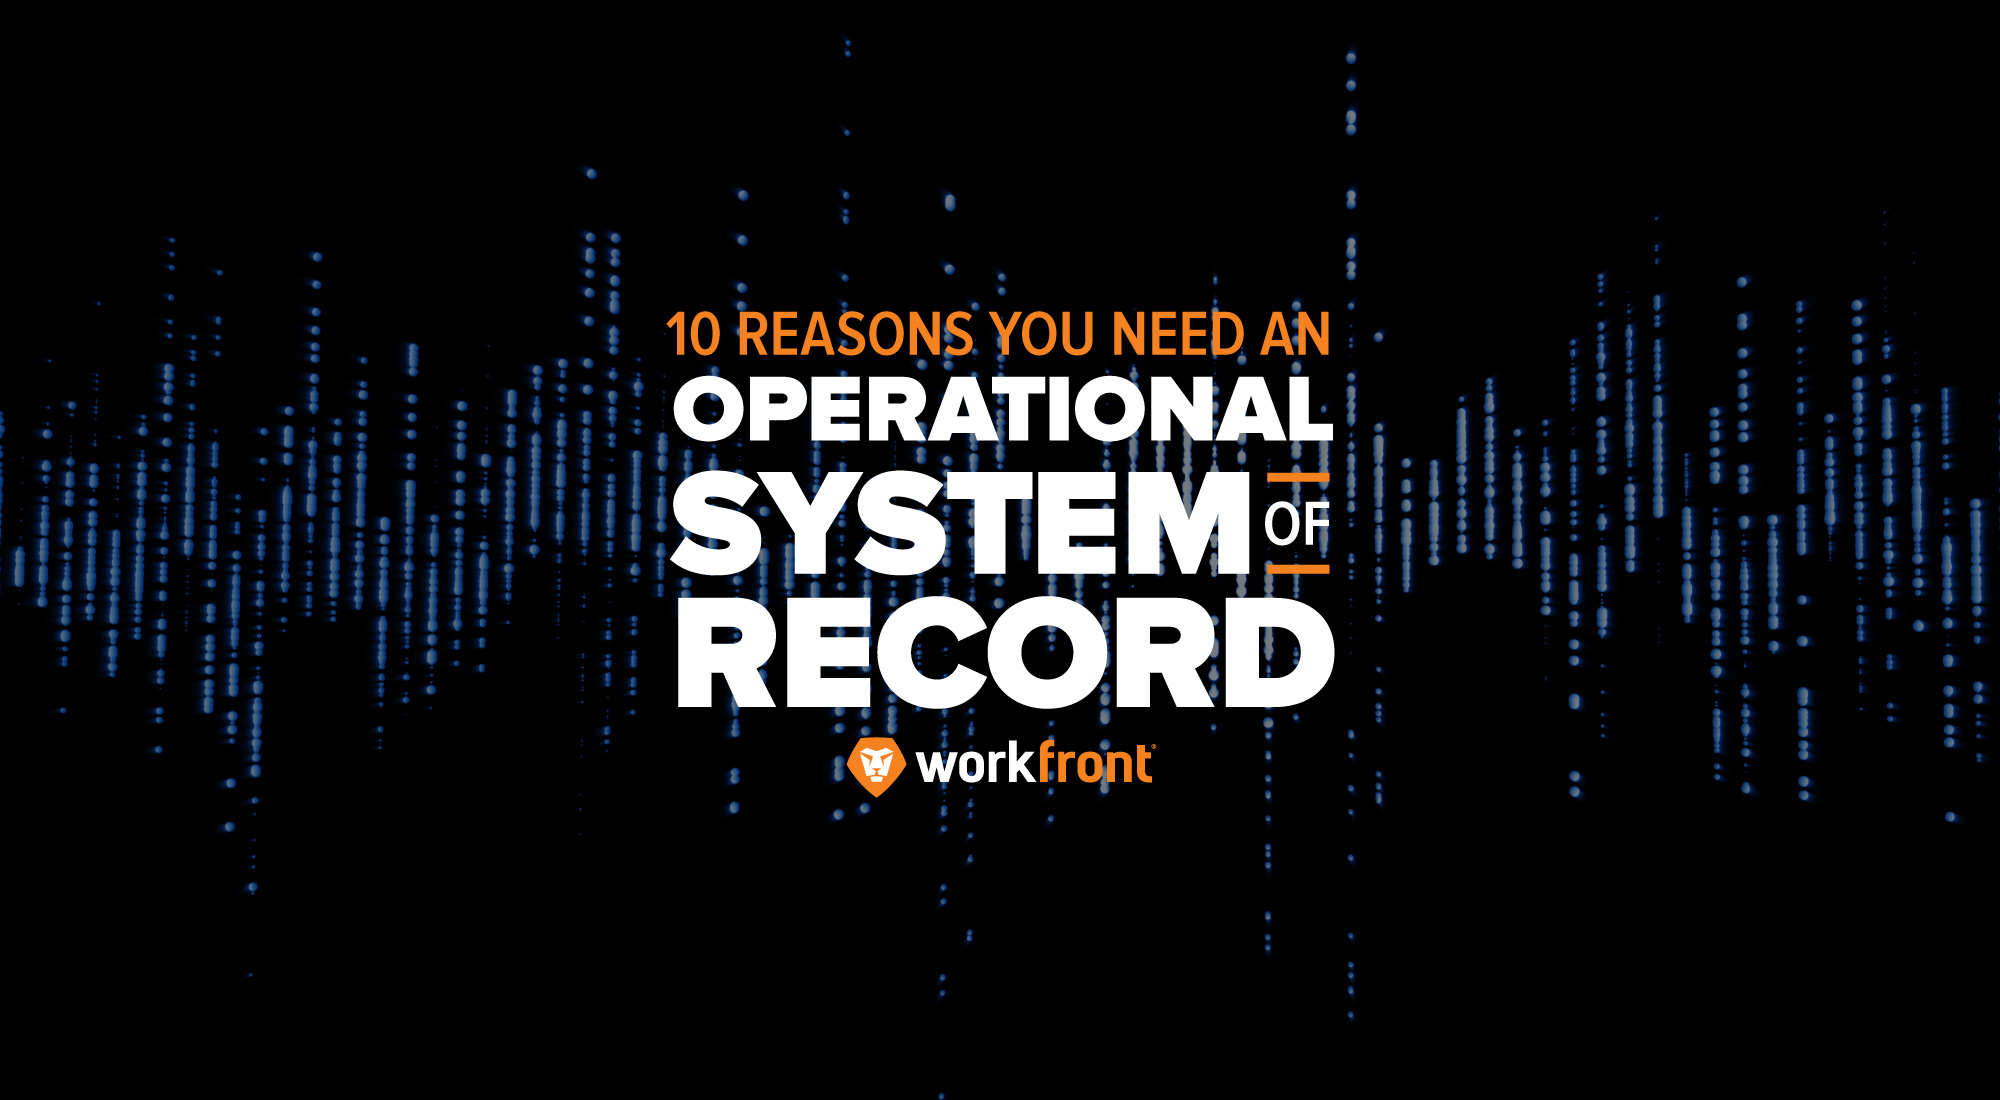 why operational system of record